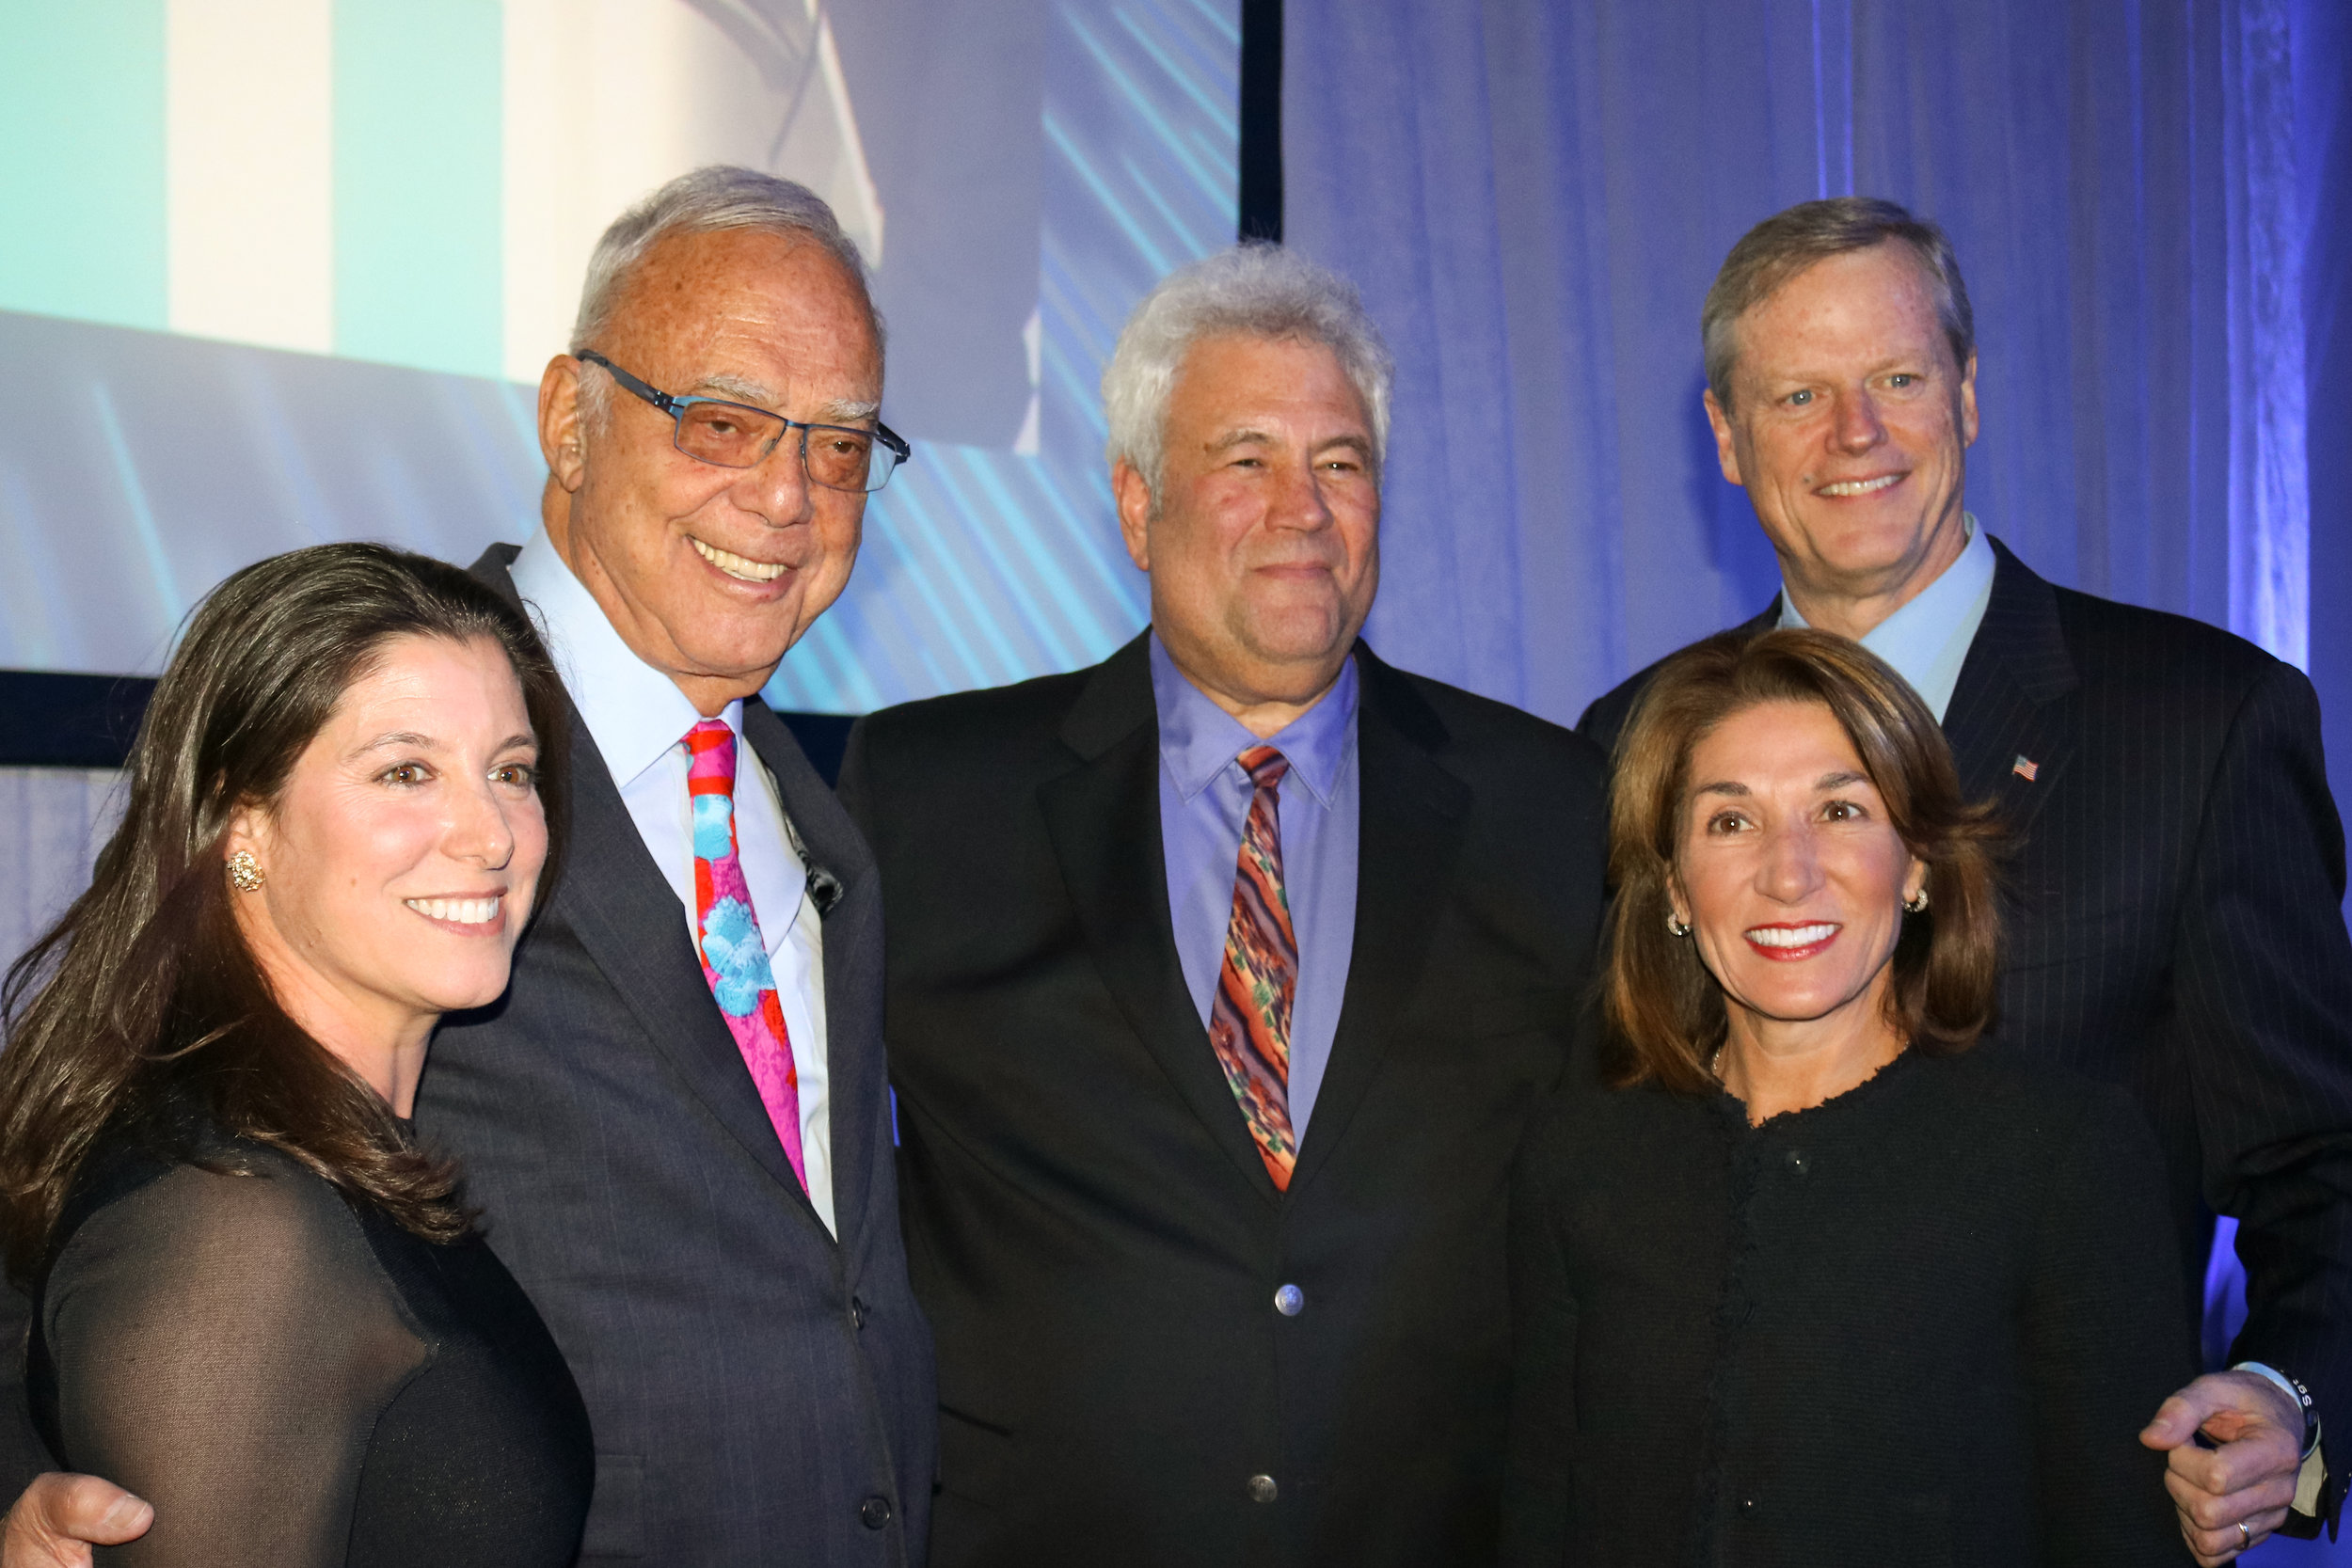 Pictured:  Lori Sidman , Chairman of the Board, JCC Greater Boston,  Arthur Winn ,  Mark SokoLl , President and CEO, JCC Greater Boston, Lt. Gov.  Karyn Polito  and Massachusetts Gov.  Charlie Baker